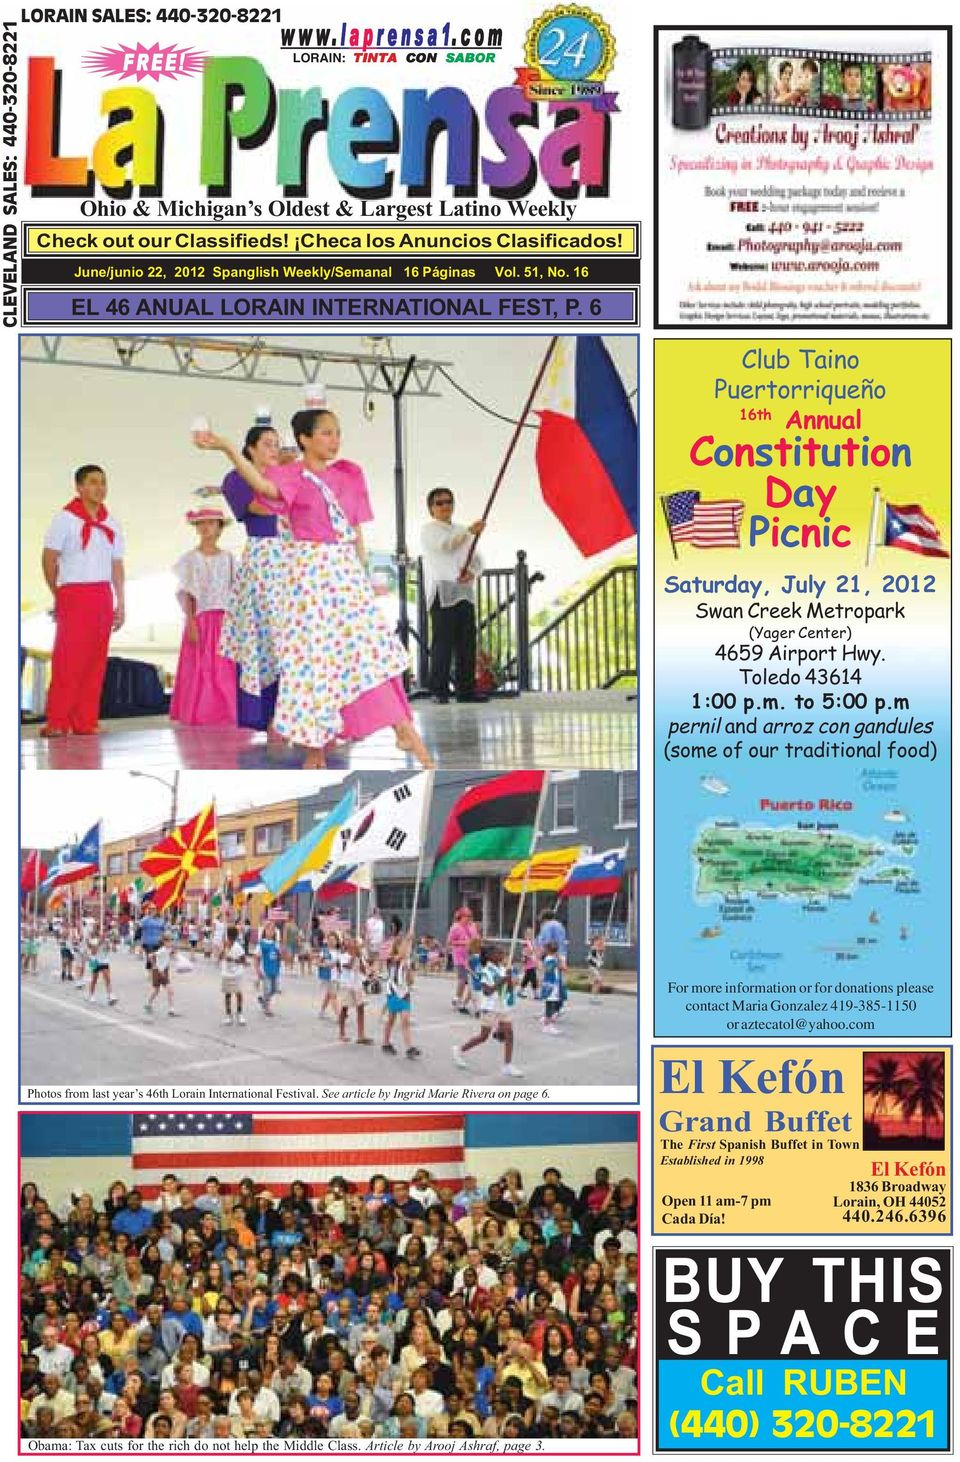 6 Club Taino Puertorriqueño 16th Annual Constitution Day Picnic Saturday, July 21, 2012 Swan Creek Metropark (Yager Center) 4659 Airport Hwy. Toledo 43614 1:00 p.m. to 5:00 p.